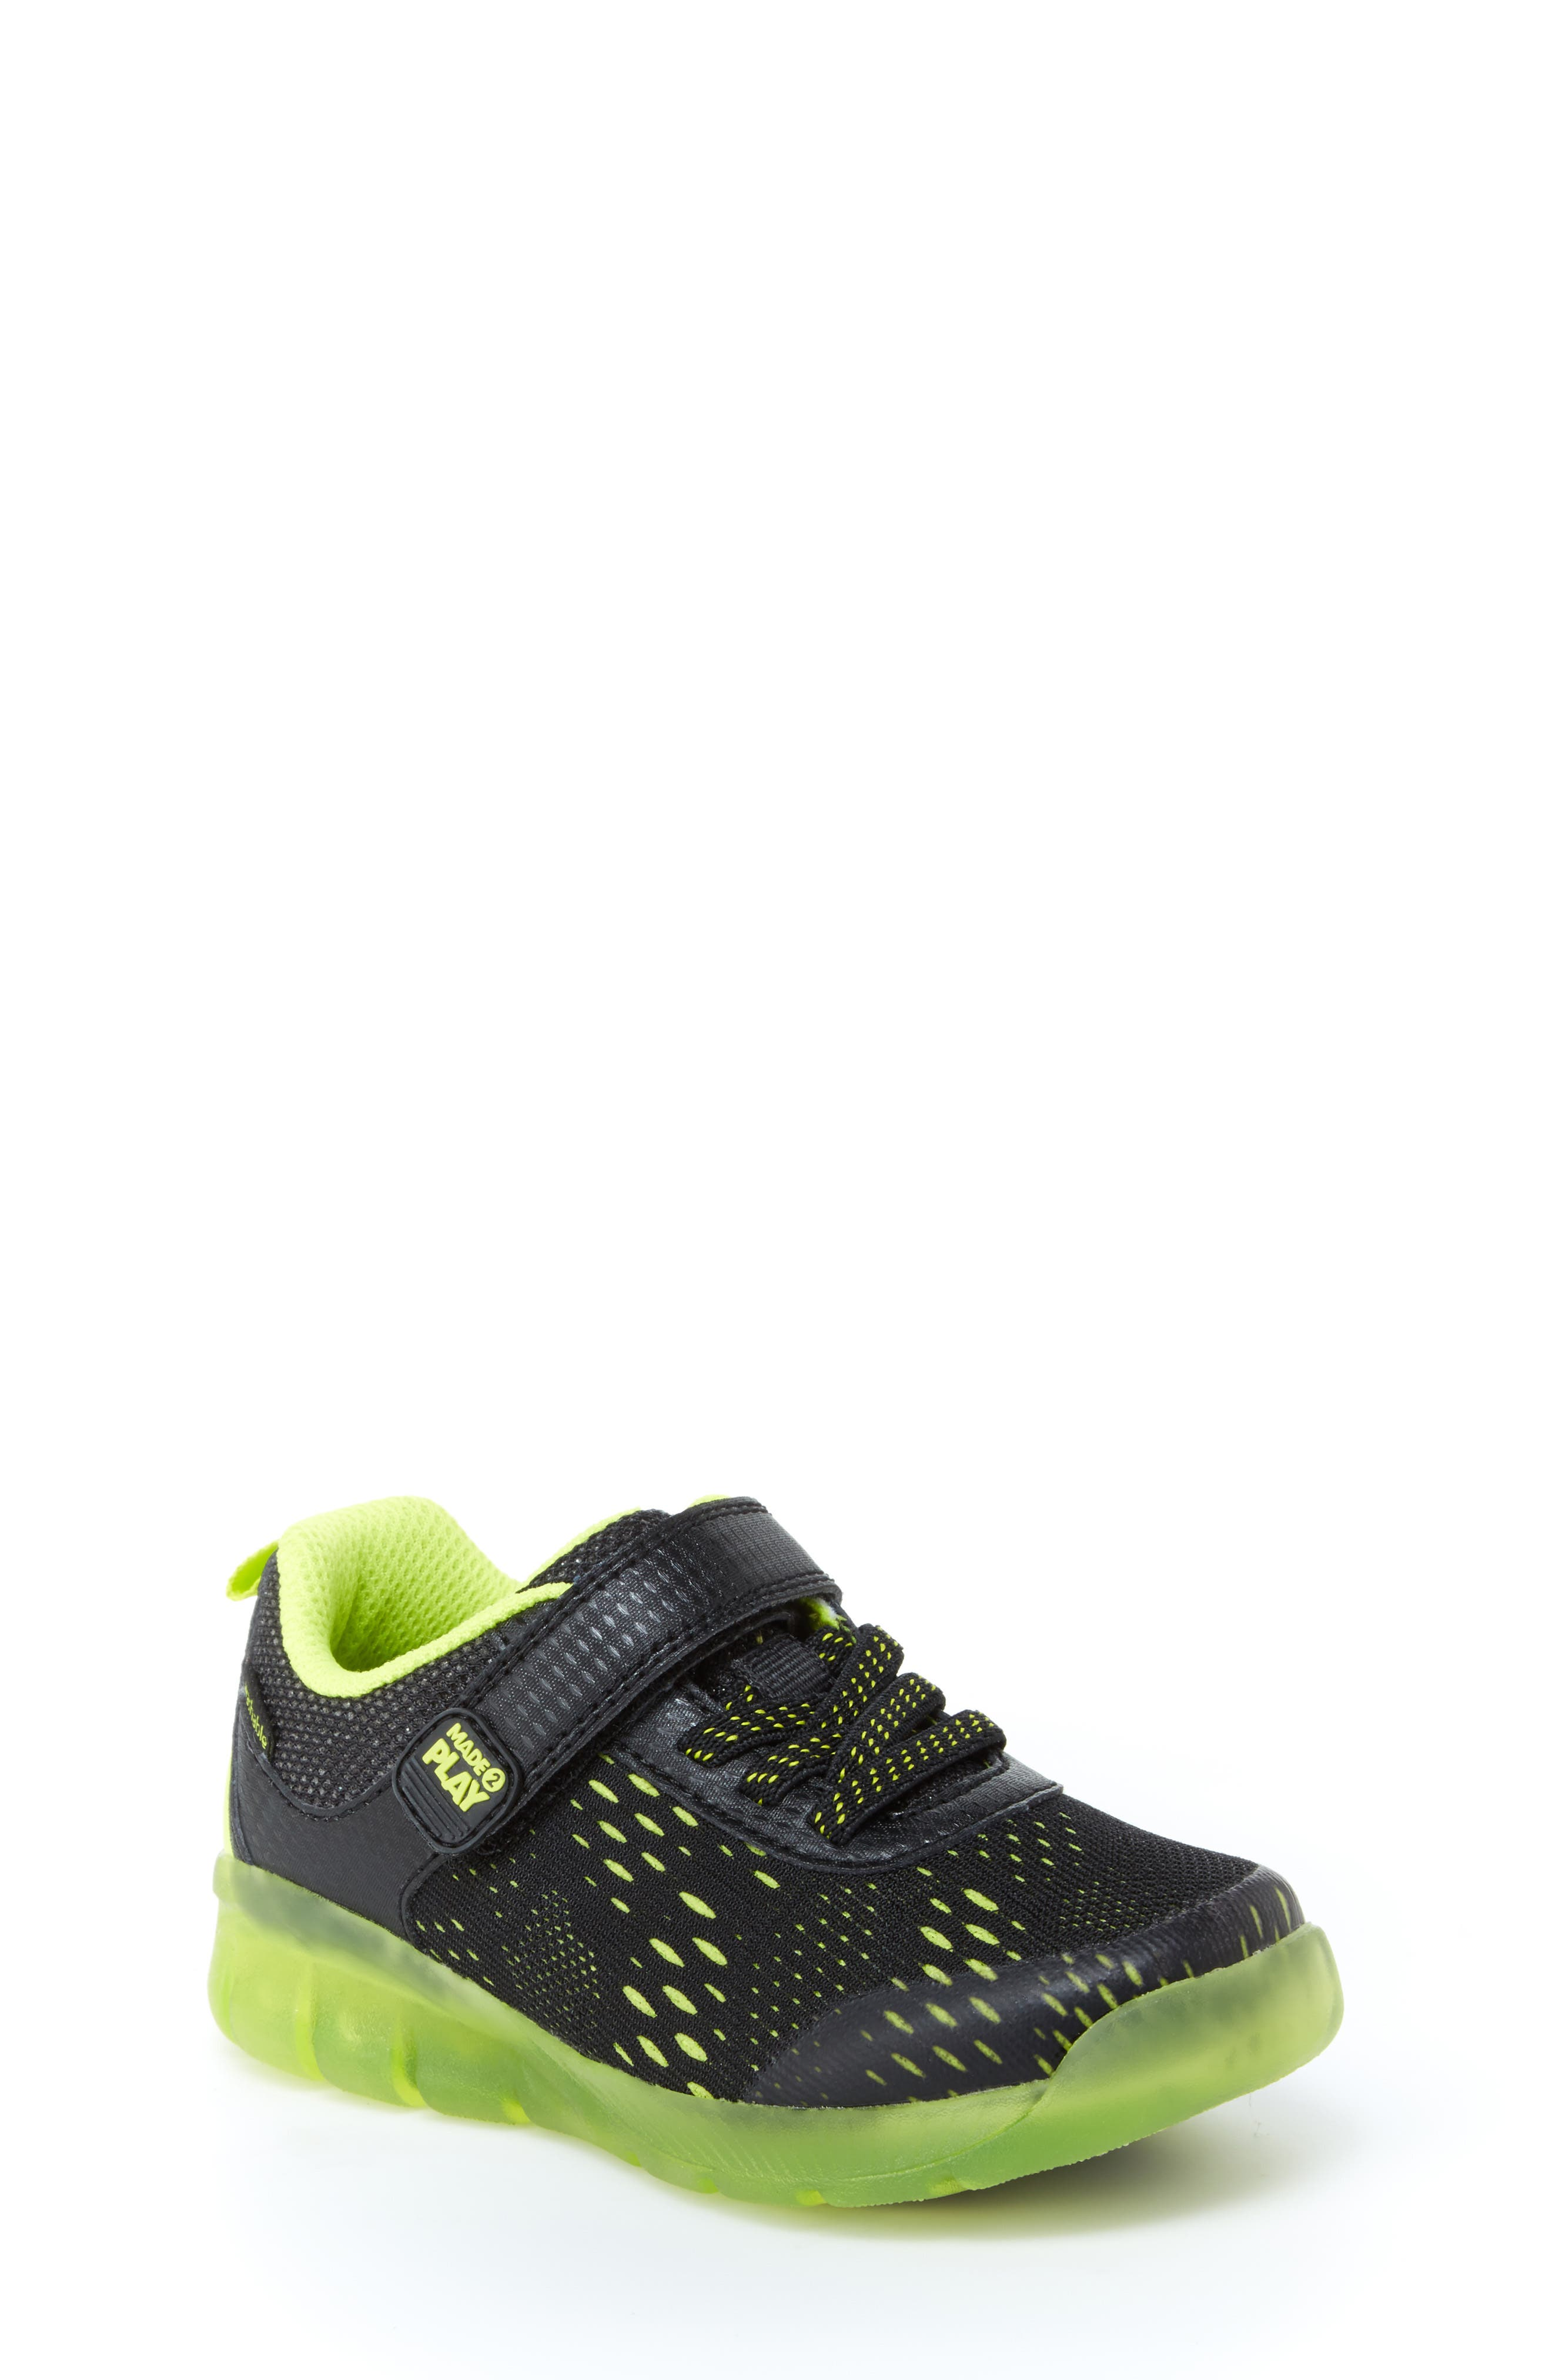 STRIDE RITE, Made2Play<sup>®</sup> Neo Light-Up Sneaker, Main thumbnail 1, color, 002